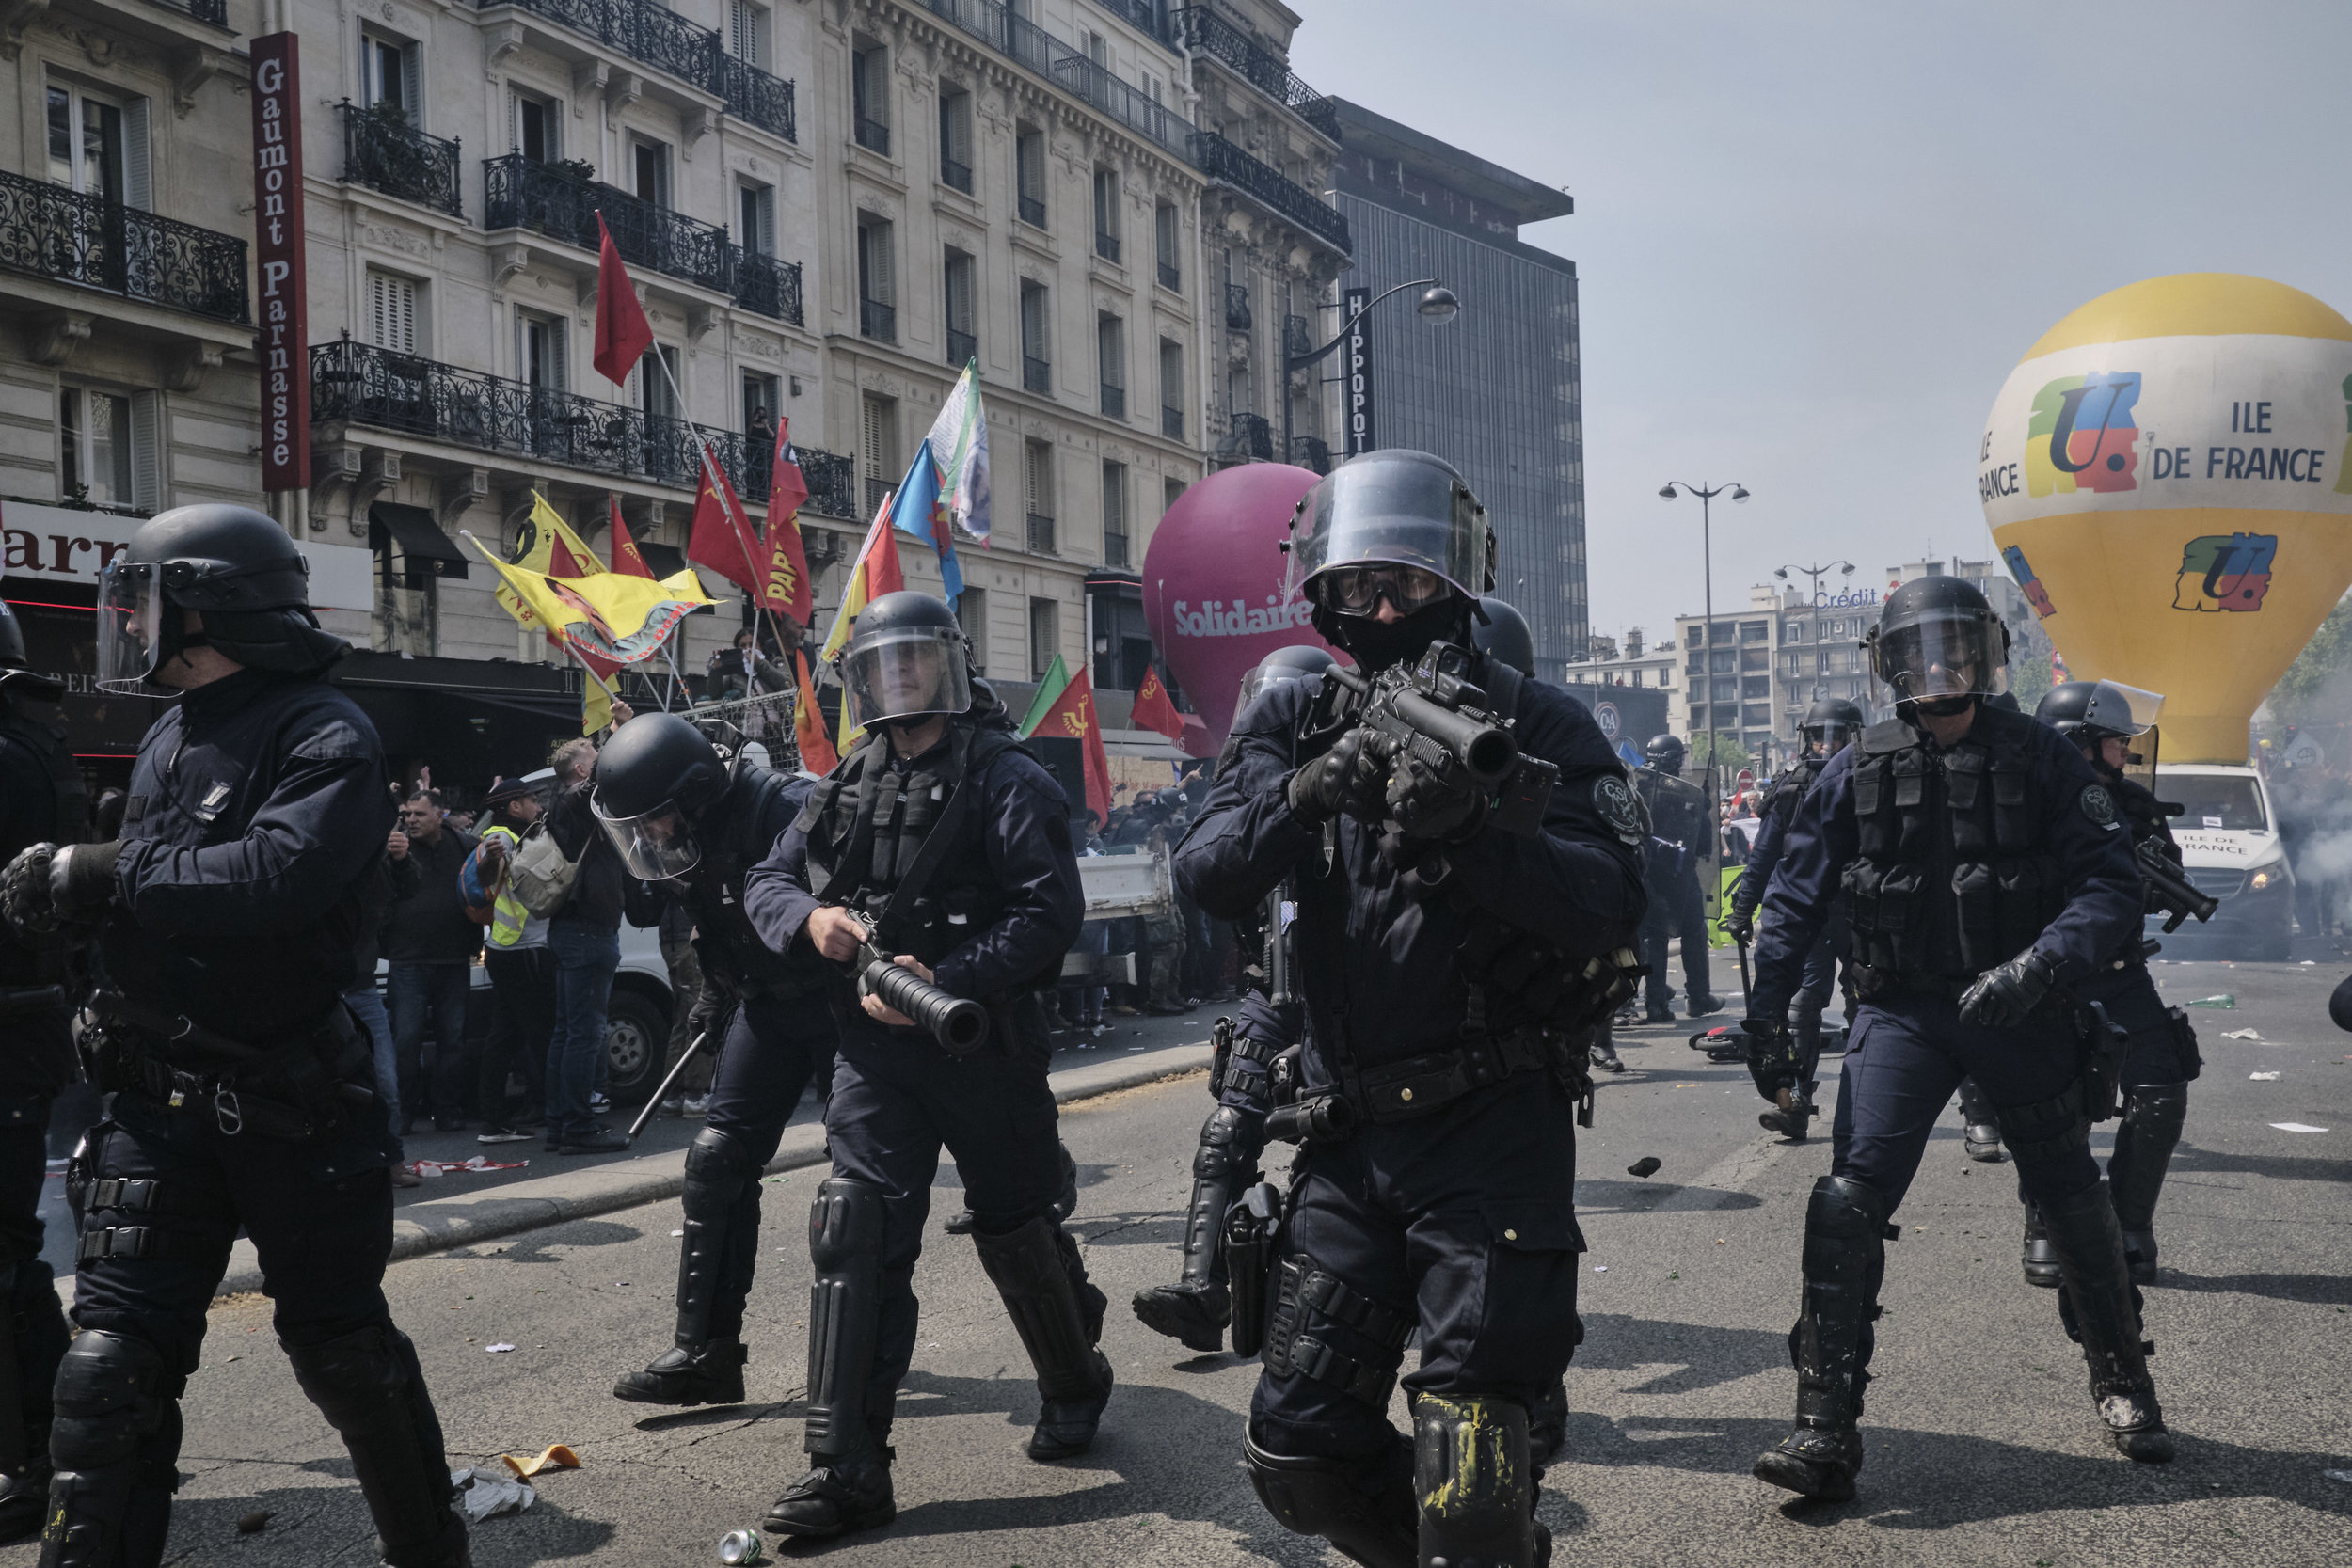 Police marching up The Boulevard du Montparnasse after an attempt to control the crows.